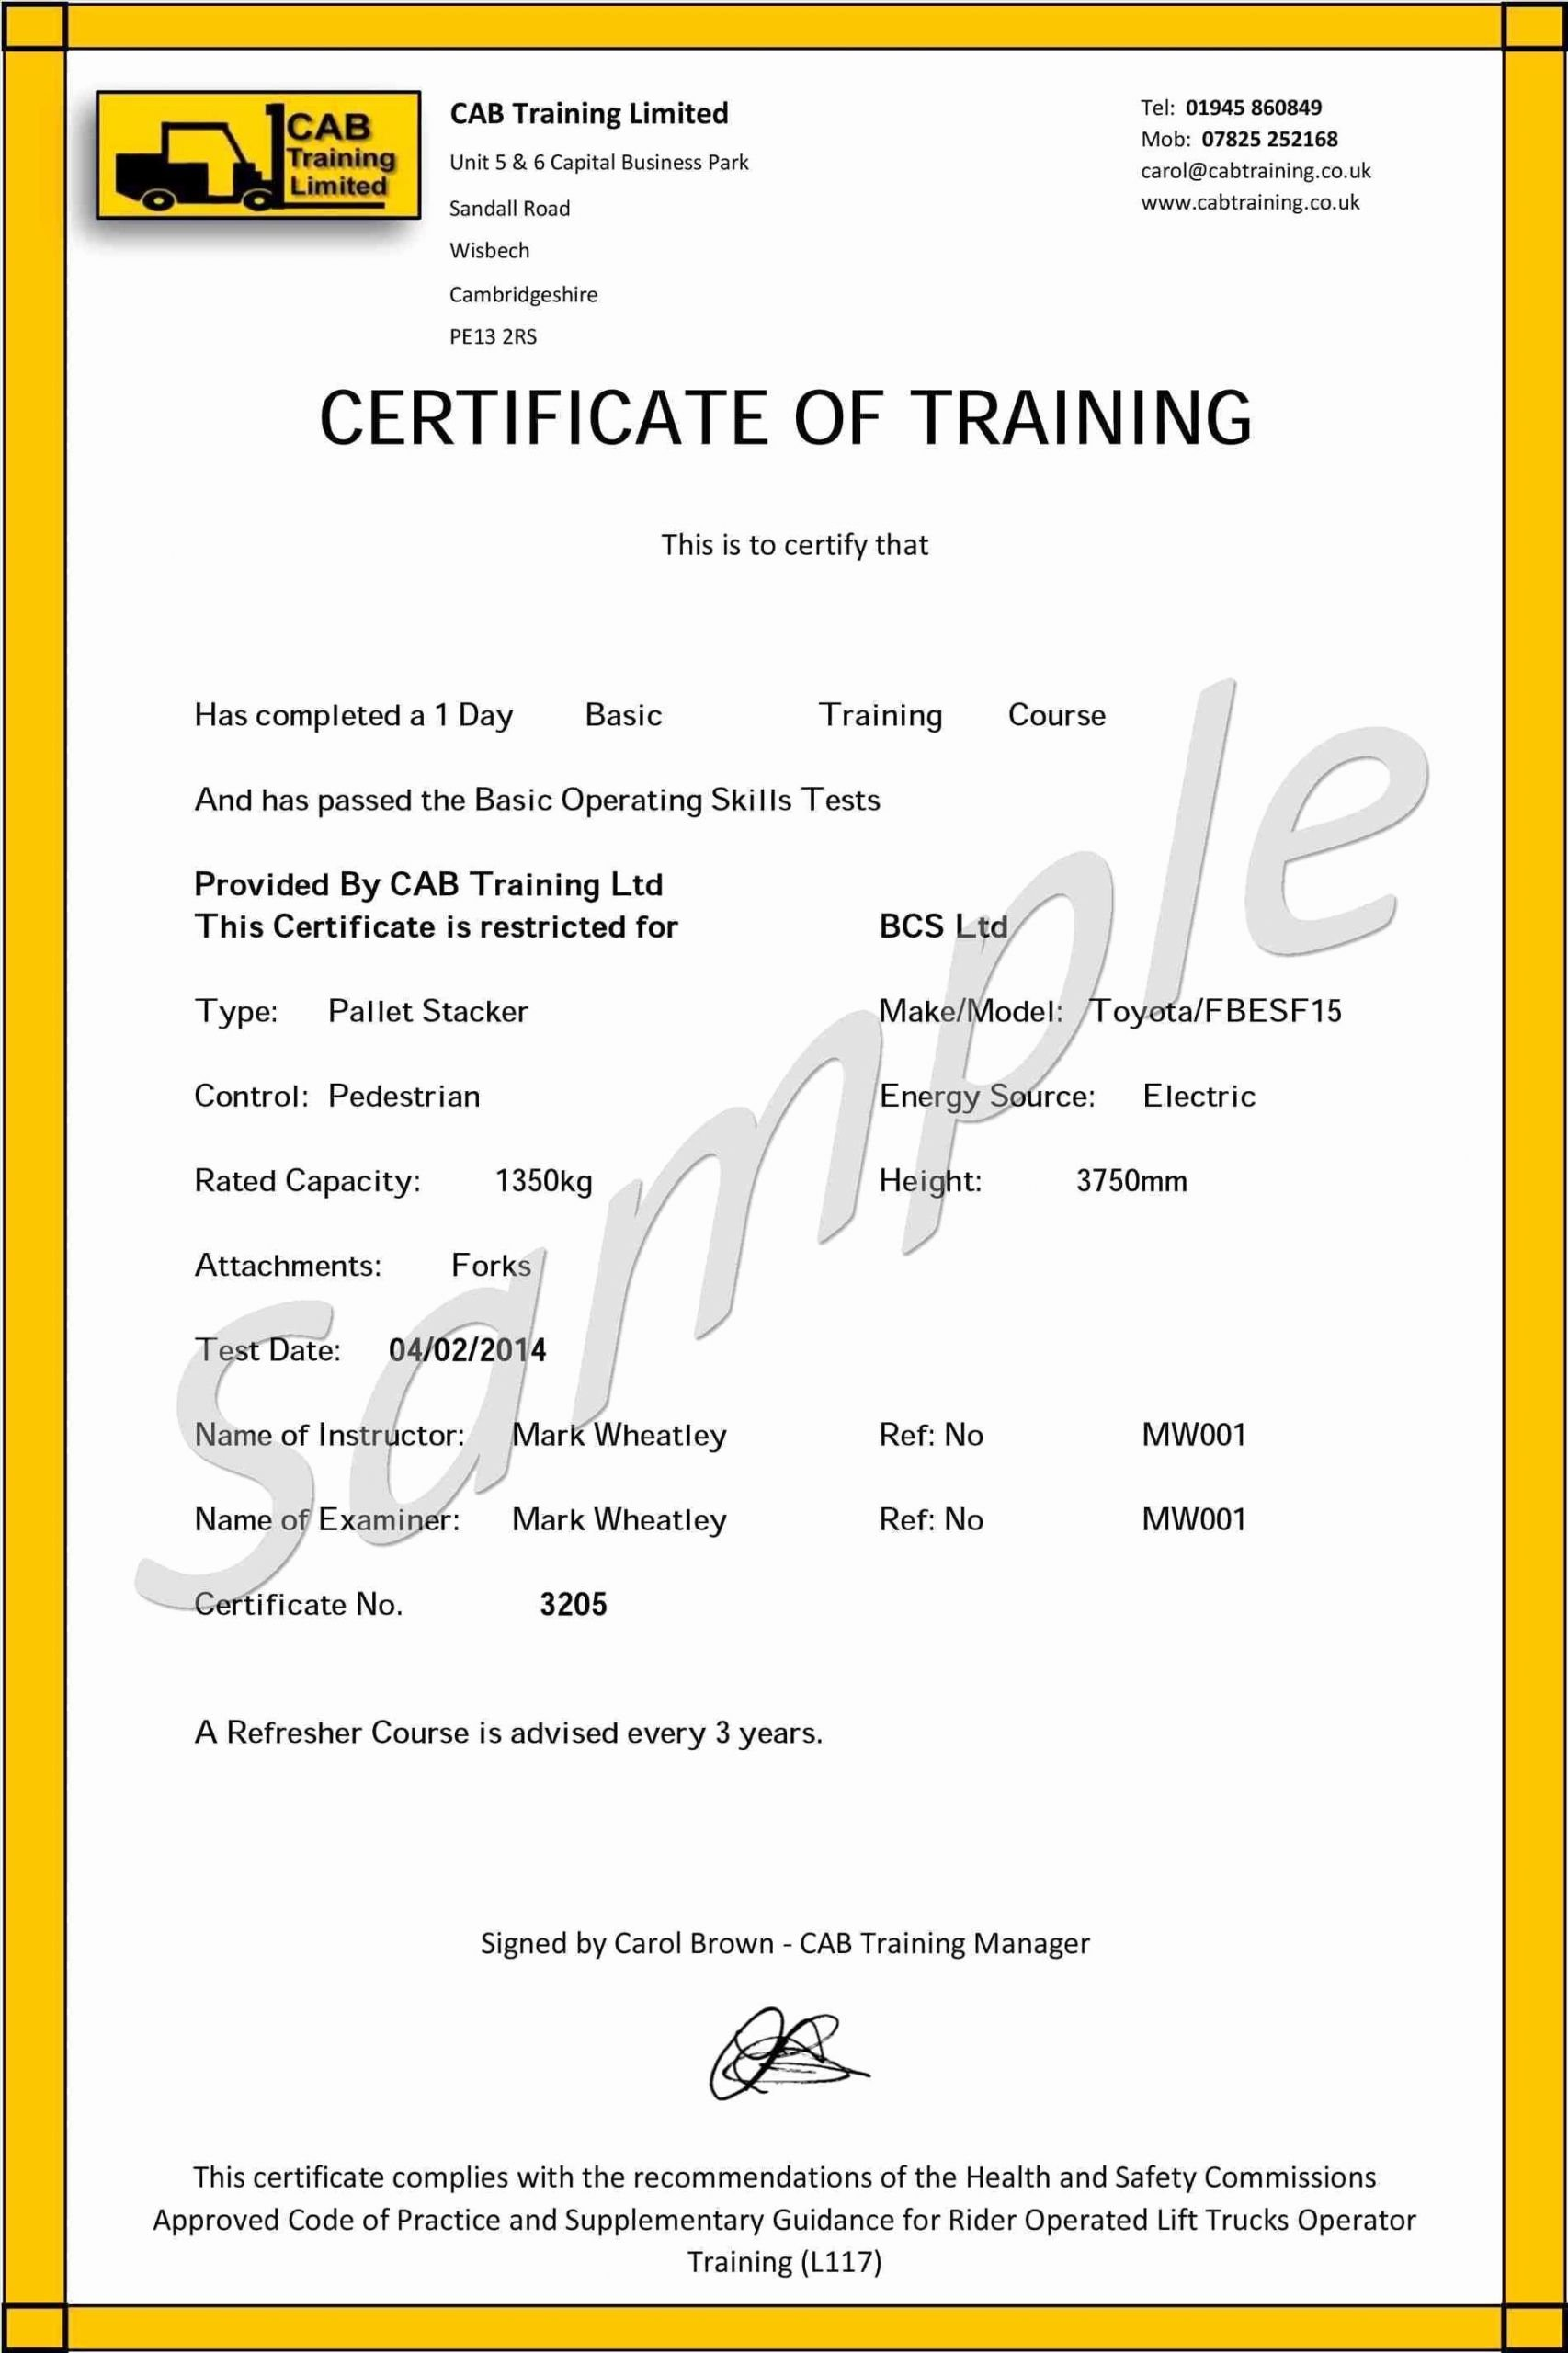 Forklift Training Certificate Template Best Of forklift Training Certificate Template Free